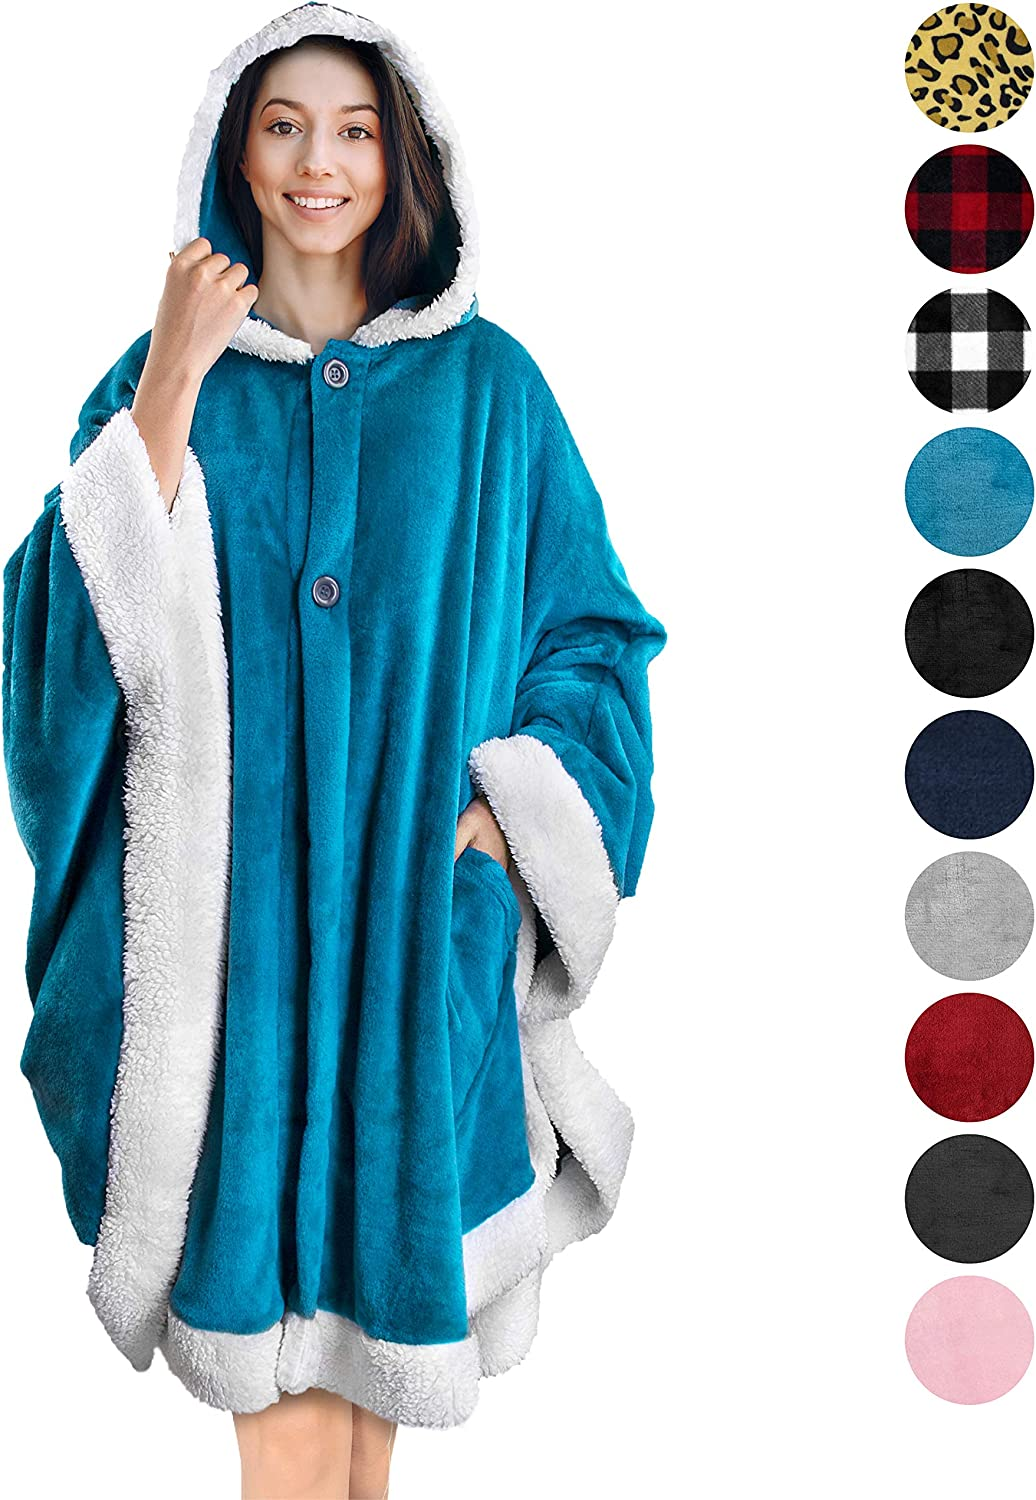 PAVILIA Angel Wrap Hooded Blanket | Poncho Blanket Wrap with Soft Sherpa Fleece | Plush, Warm, Wearable Throw Cape with Pockets for Women Gift (Sea Blue)